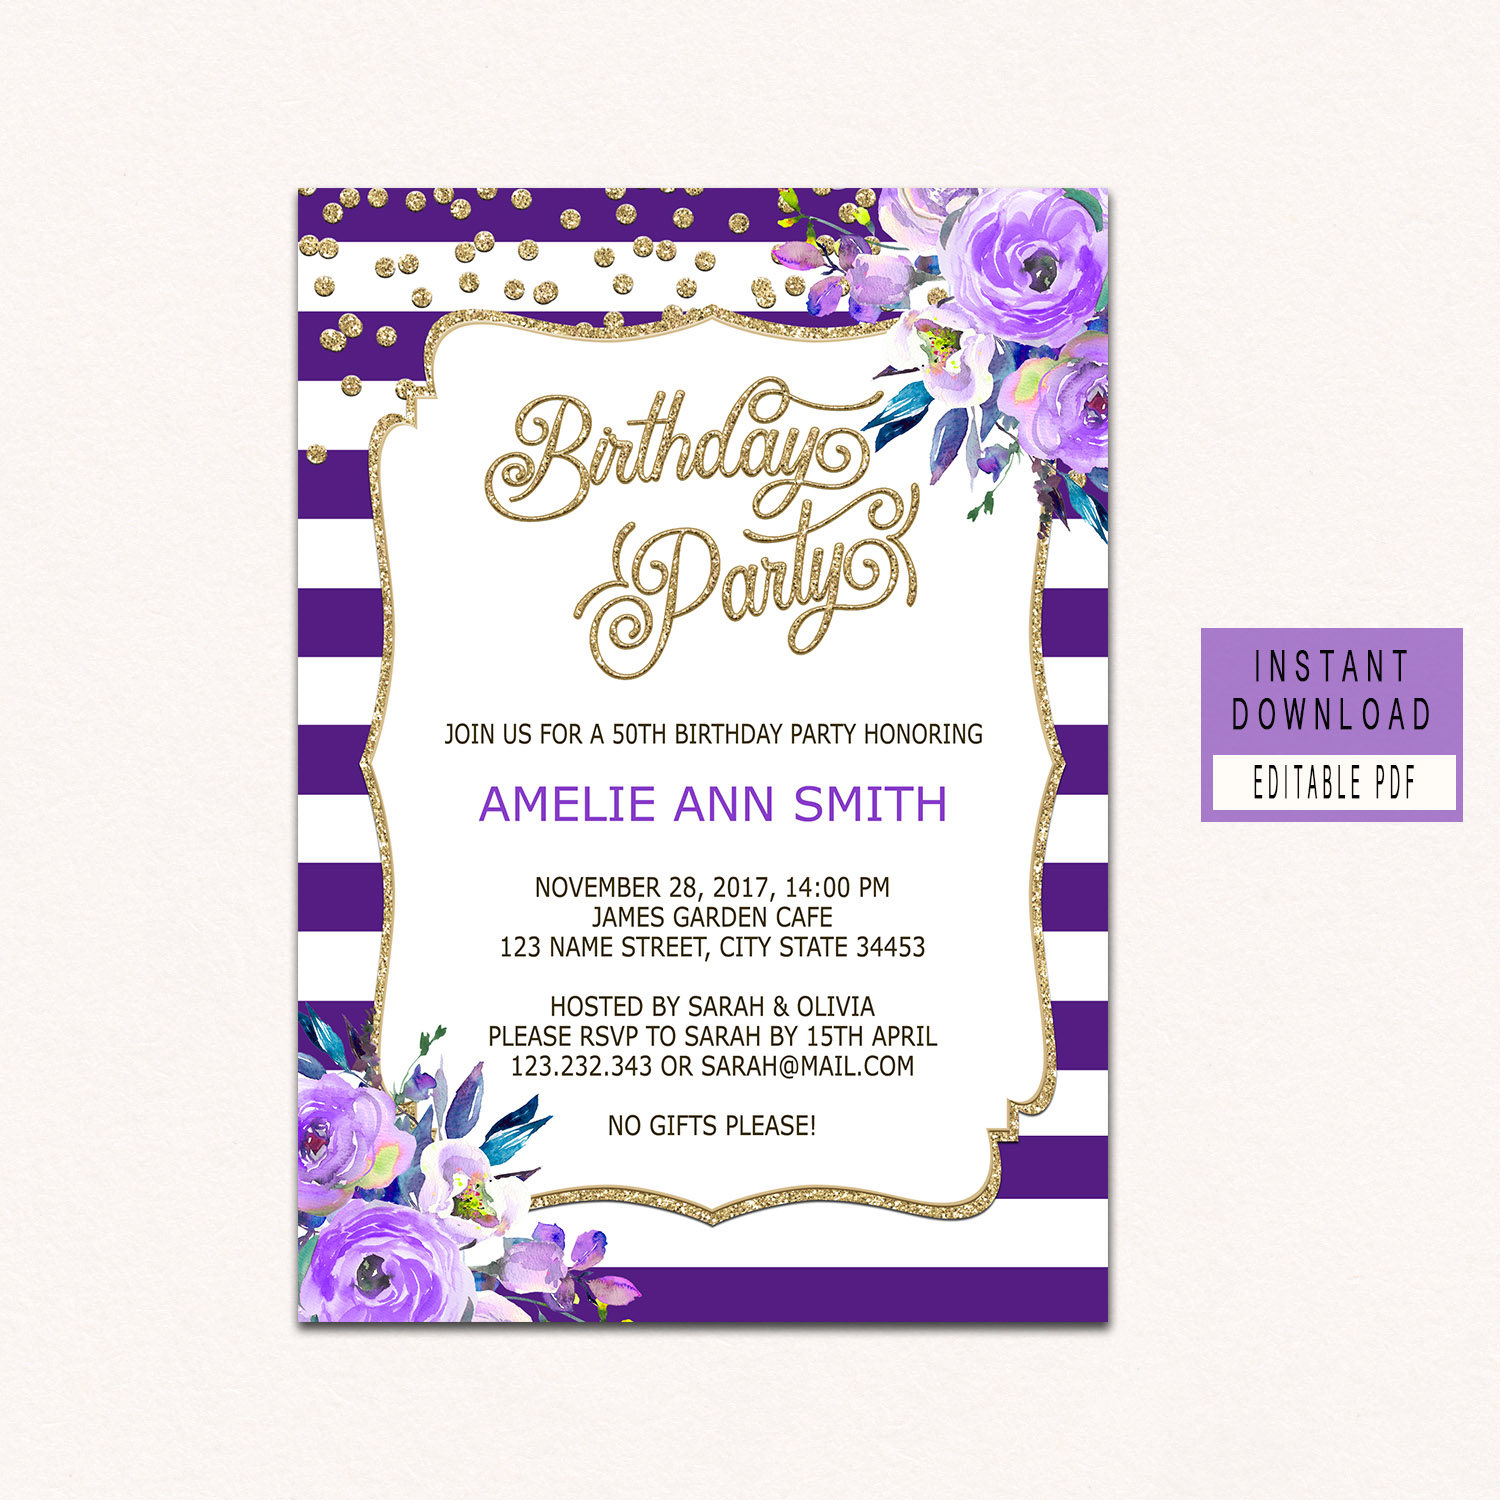 Floral Purple Birthday invitations for women adult birthday | Etsy